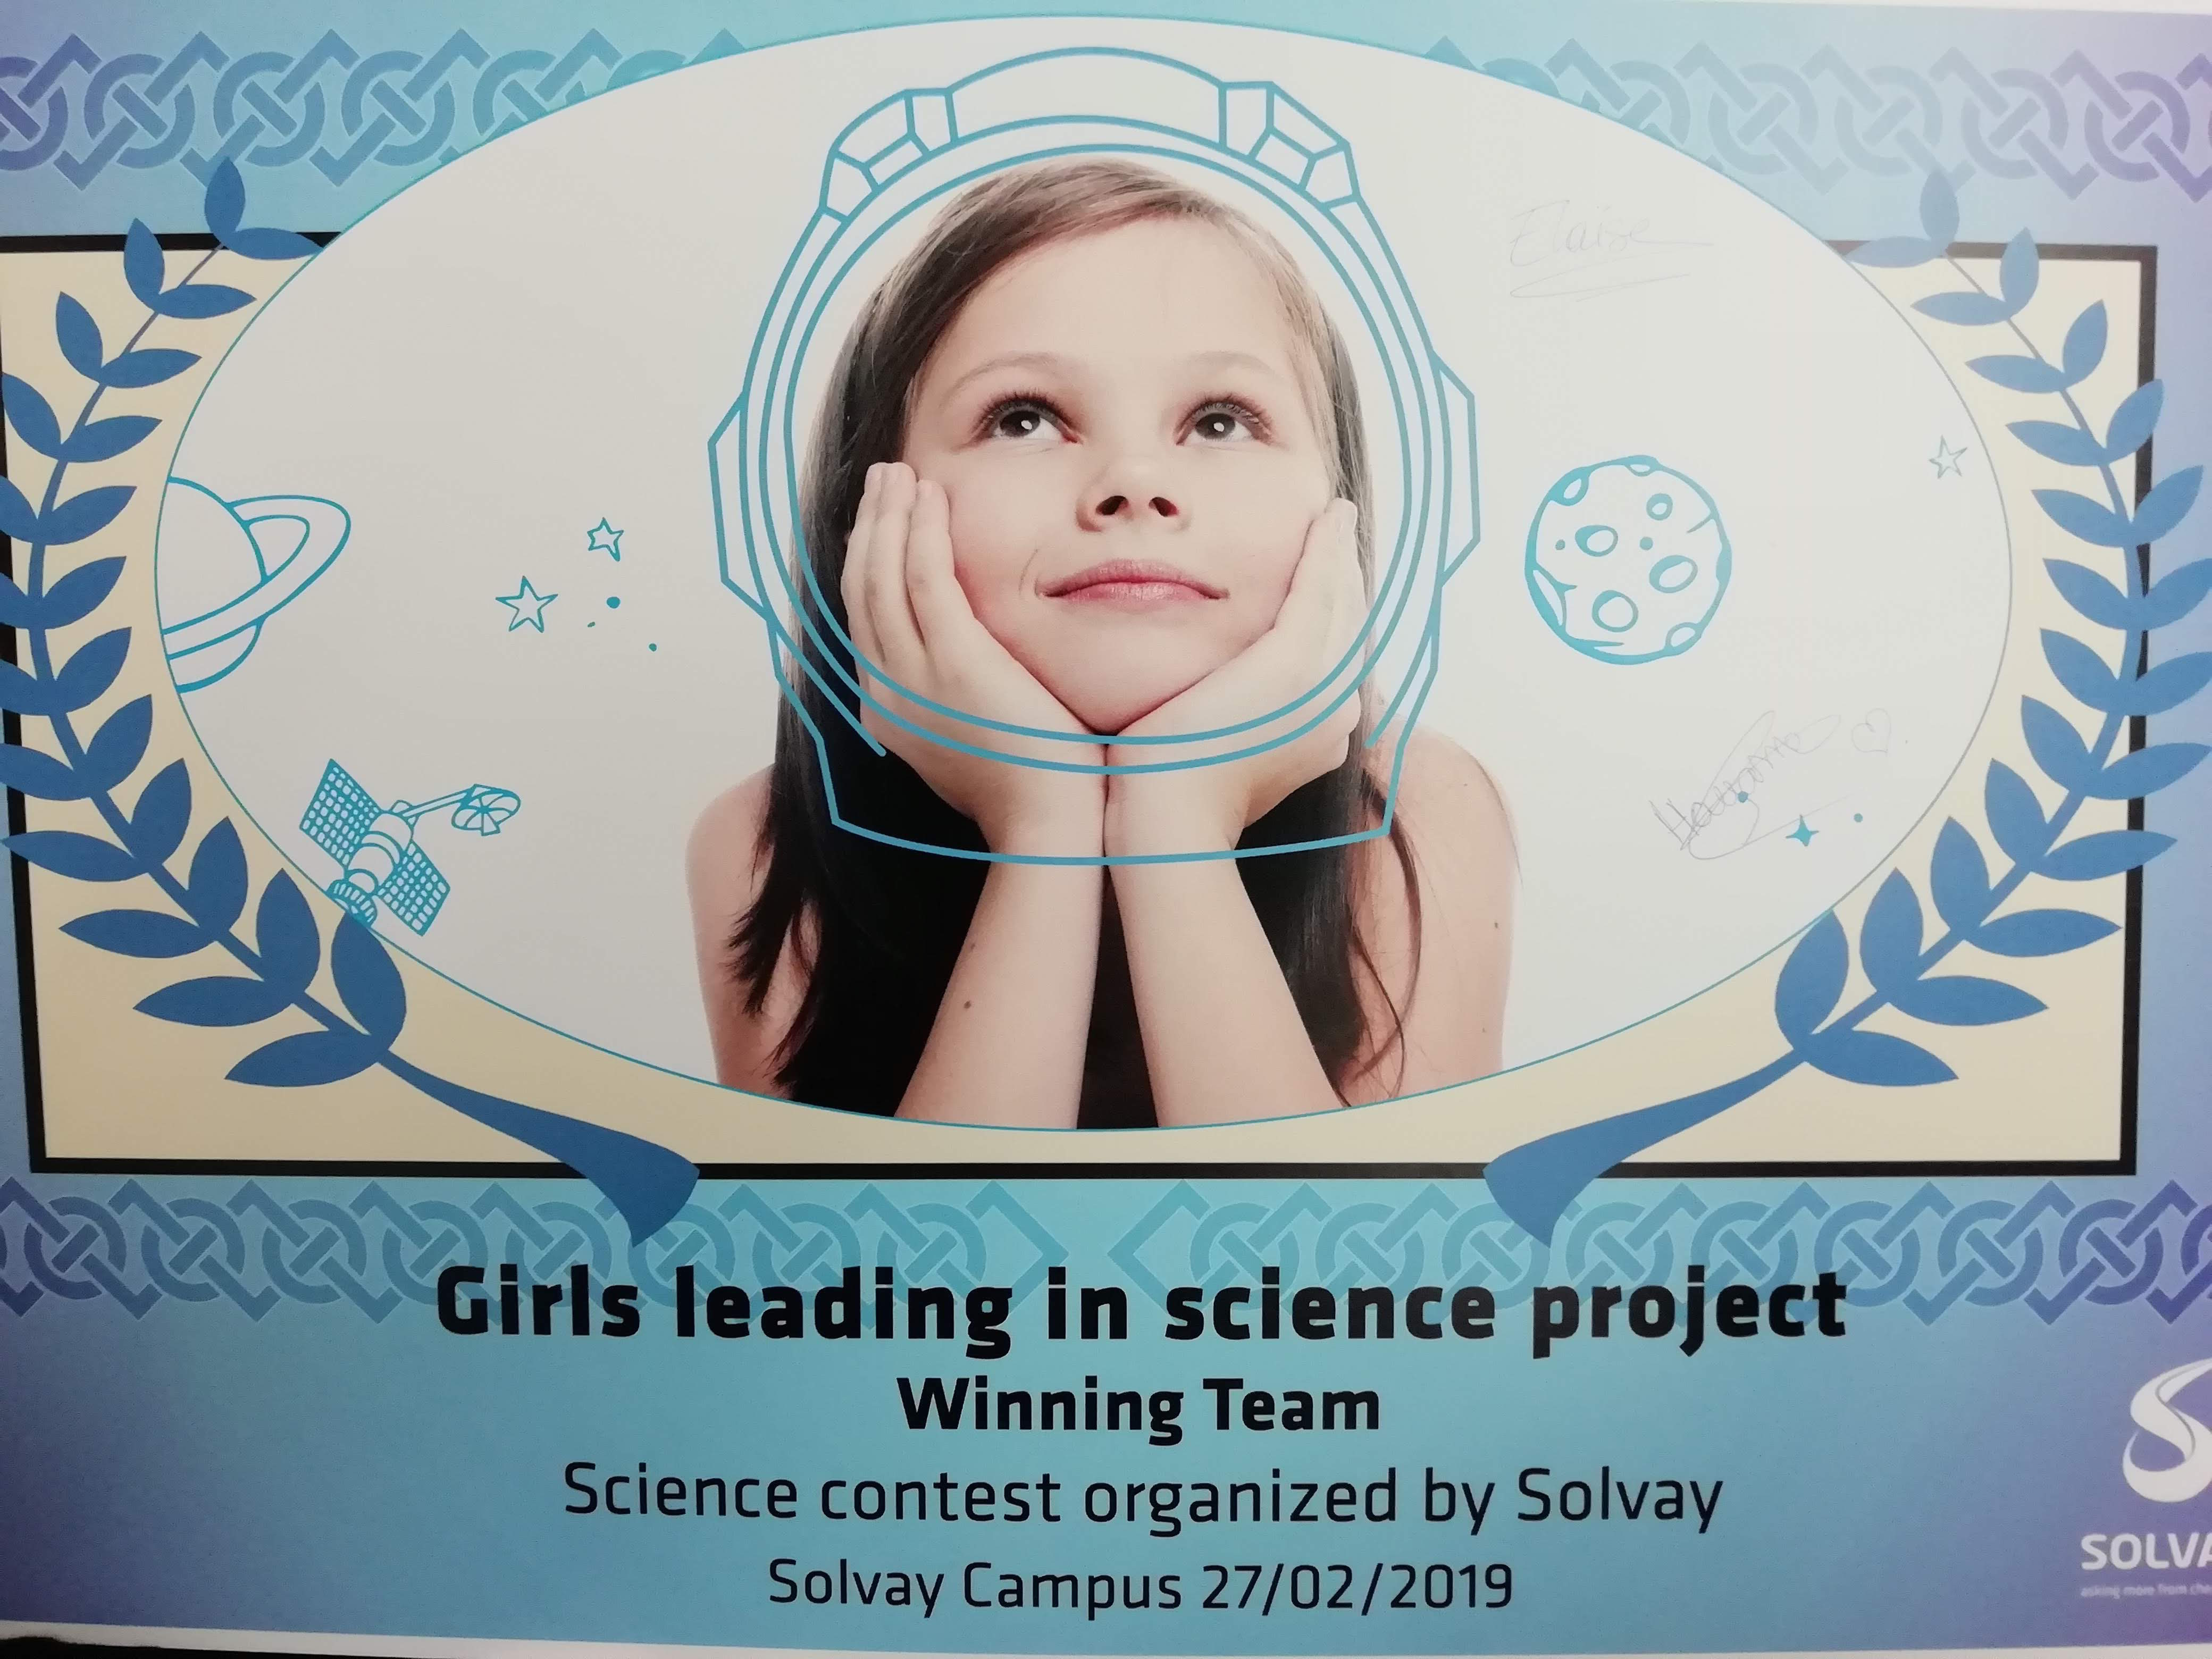 L'IPES d'Ath lauréat du concours « Girls Leading in Science Project »